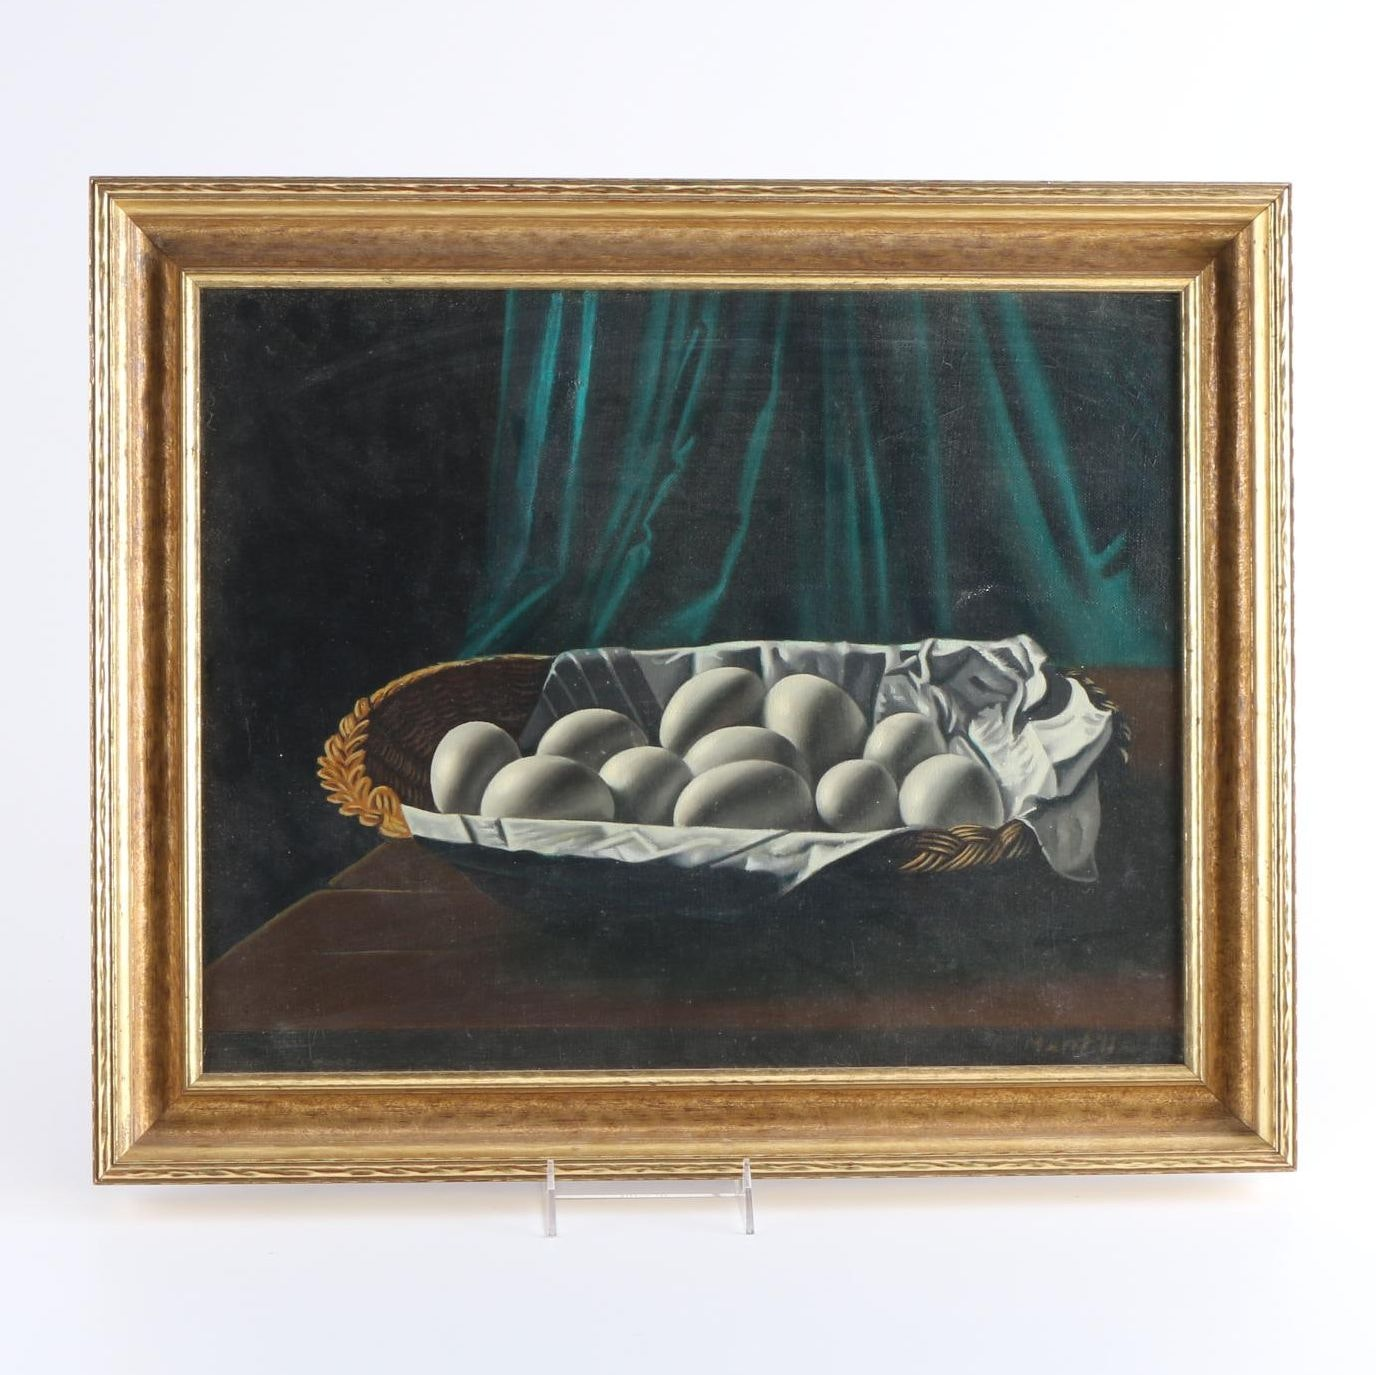 1967 Oil Painting on Canvas of a Still Life of Eggs in a Basket